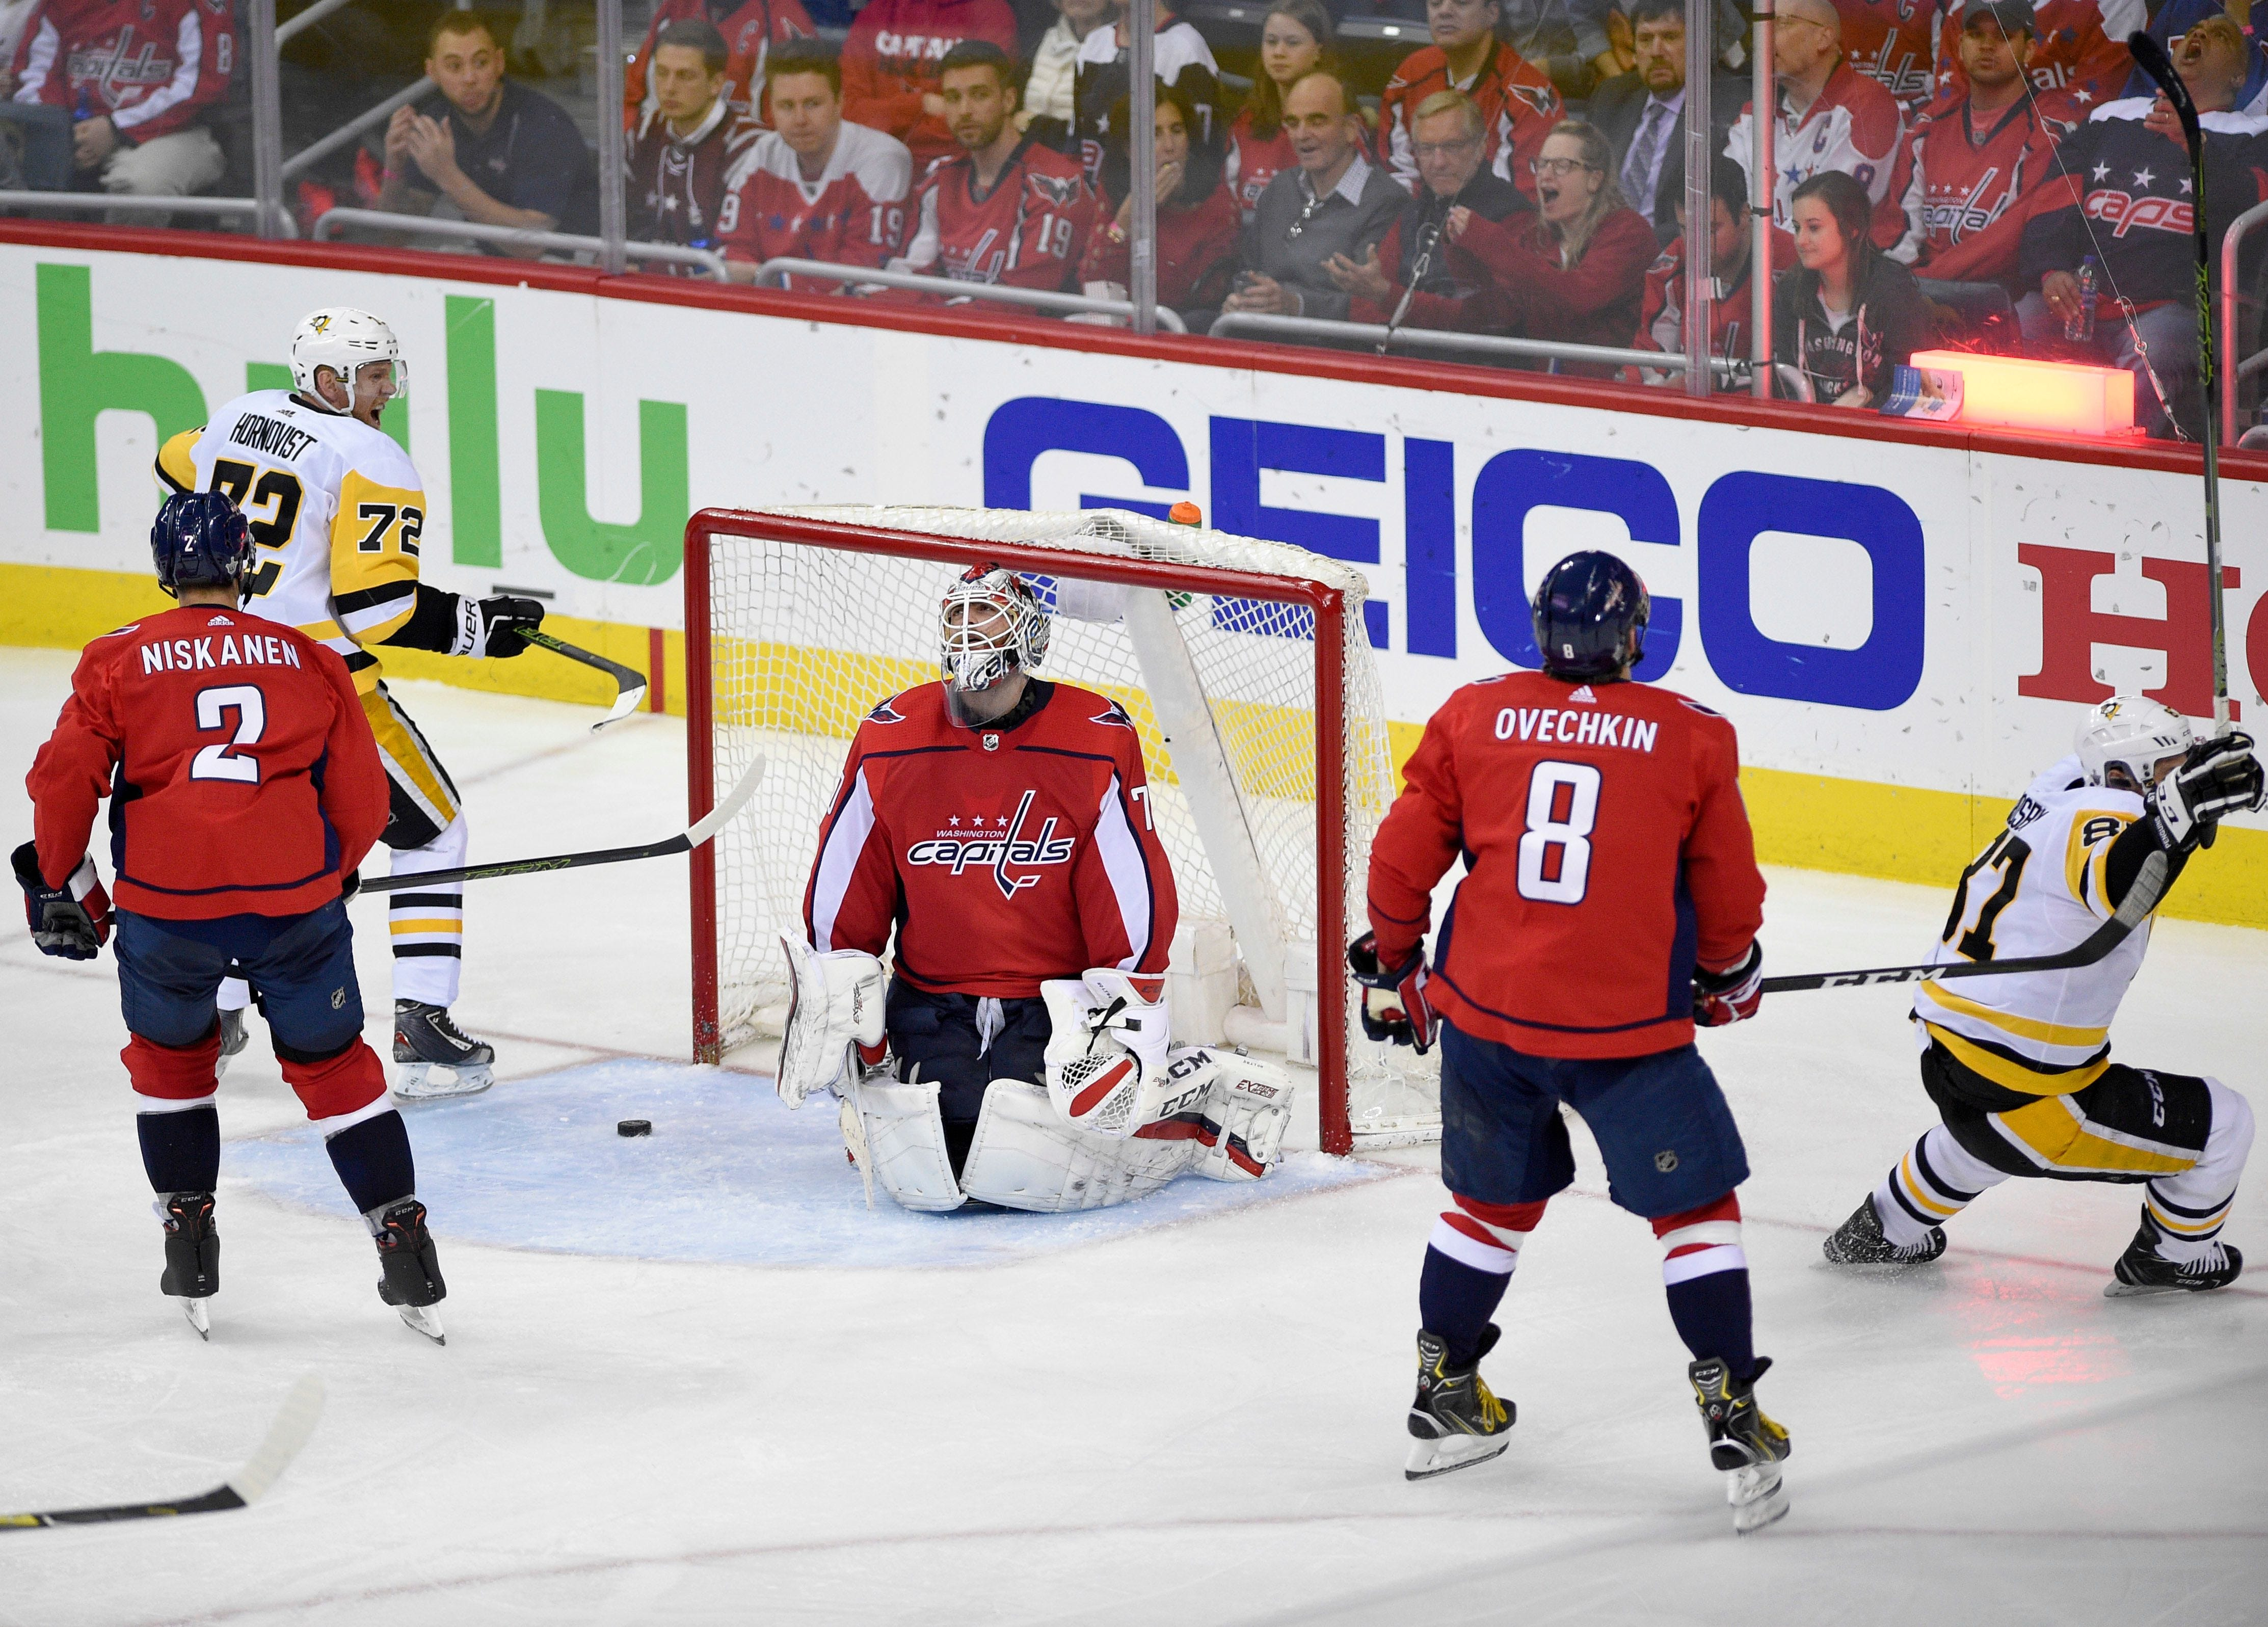 Capitals believe they can rebound from 'kick in the stomach'